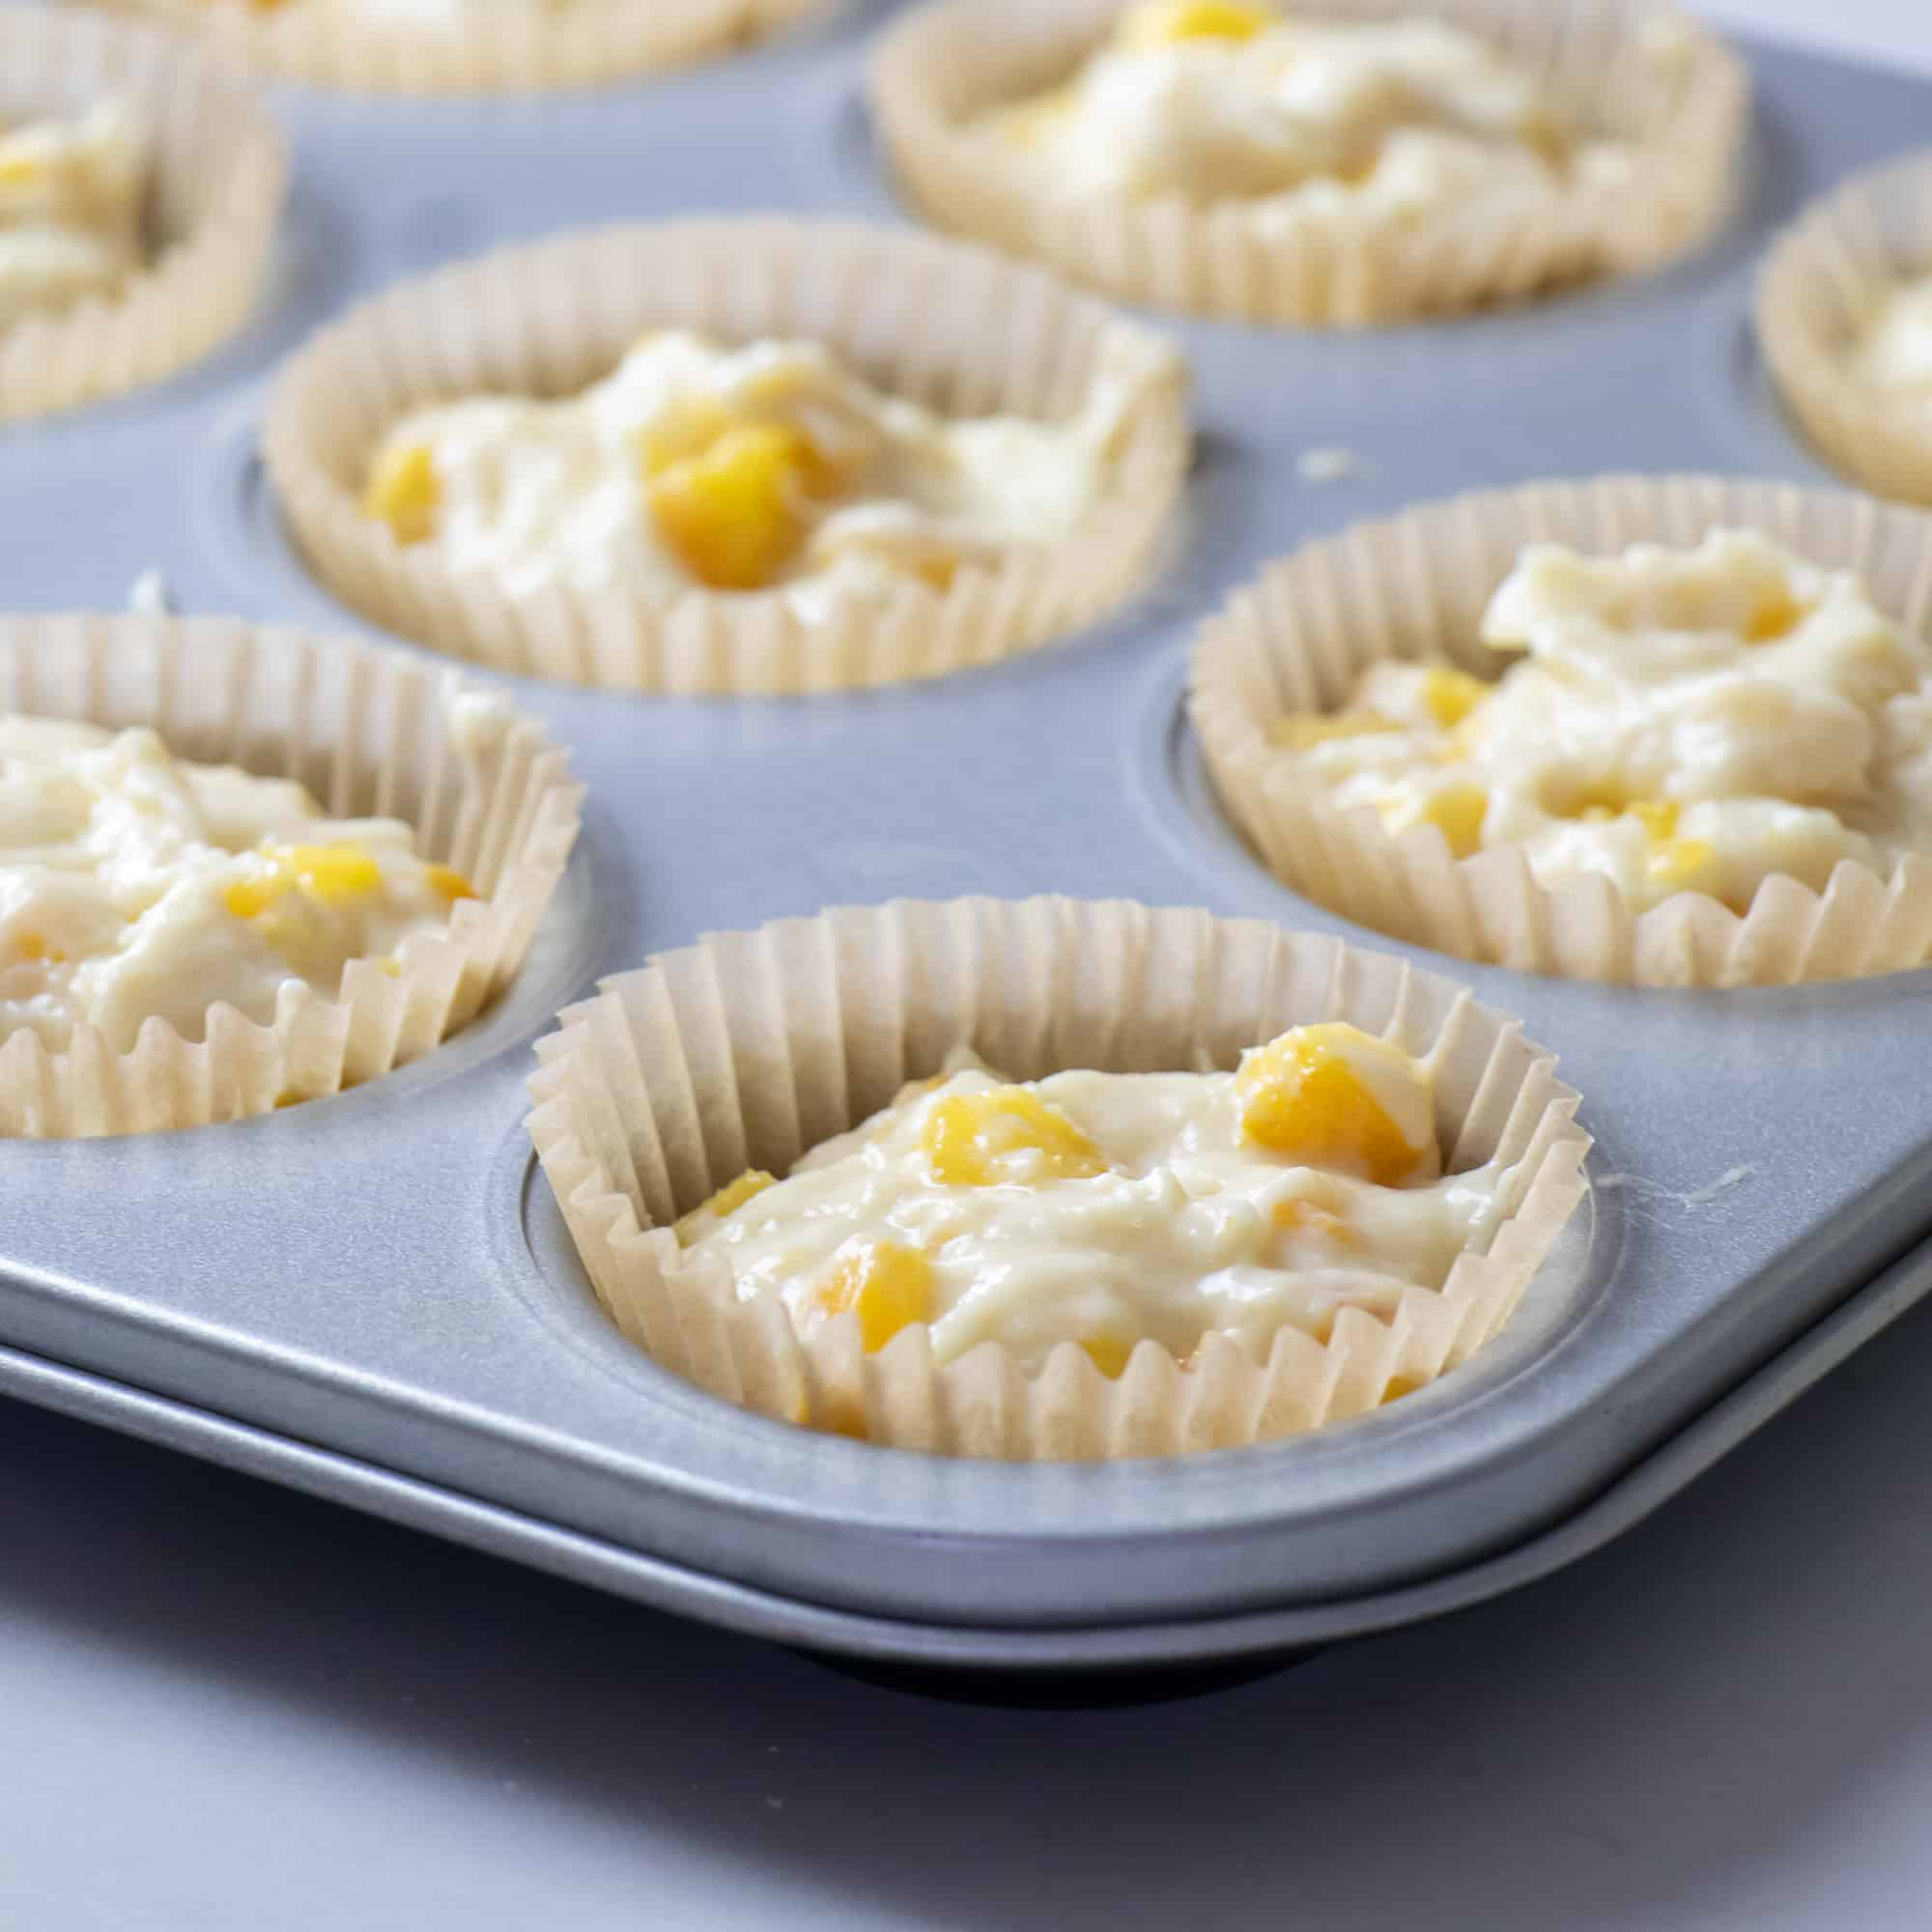 Spoon into paper lined muffin tins